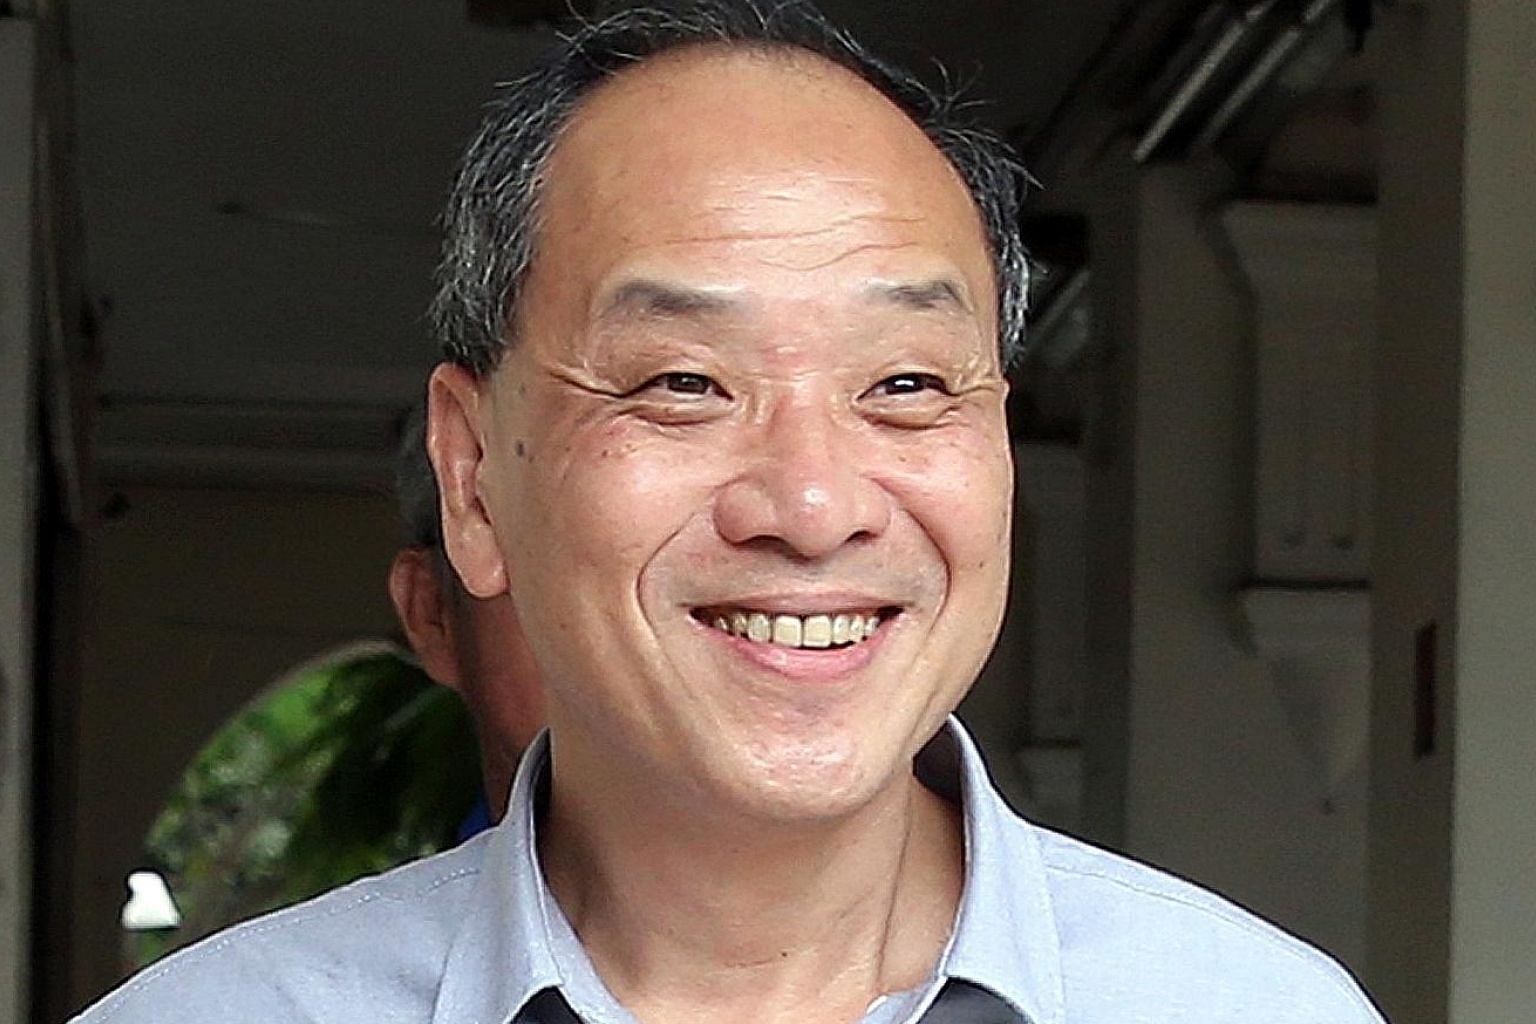 Mr Low Thia Khiang was hospitalised after he hurt his head in a fall at home last Thursday.